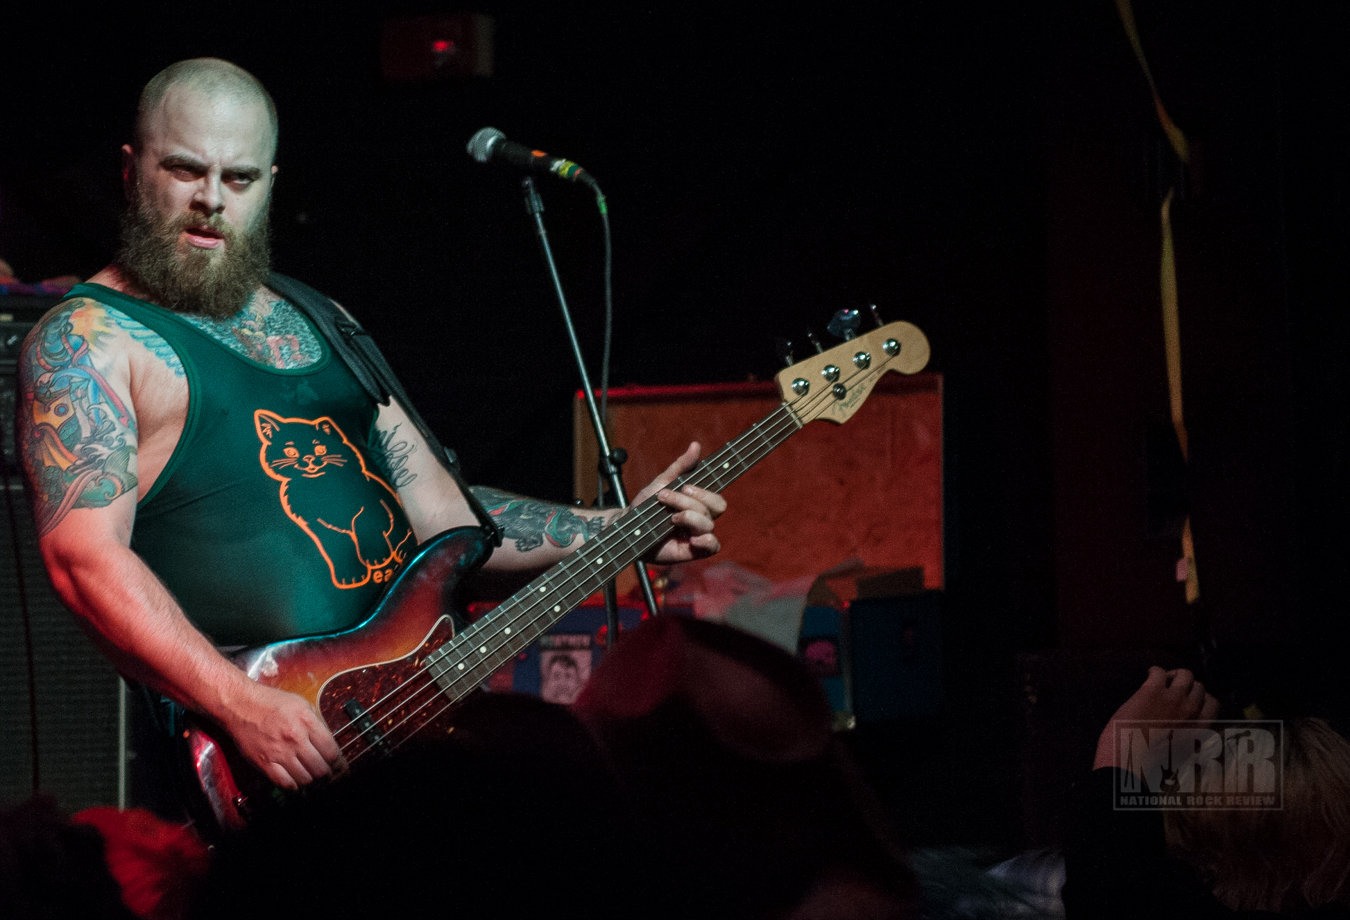 MeatMen-Branx-Portland_OR-20140605-WmRiddle-018.jpg